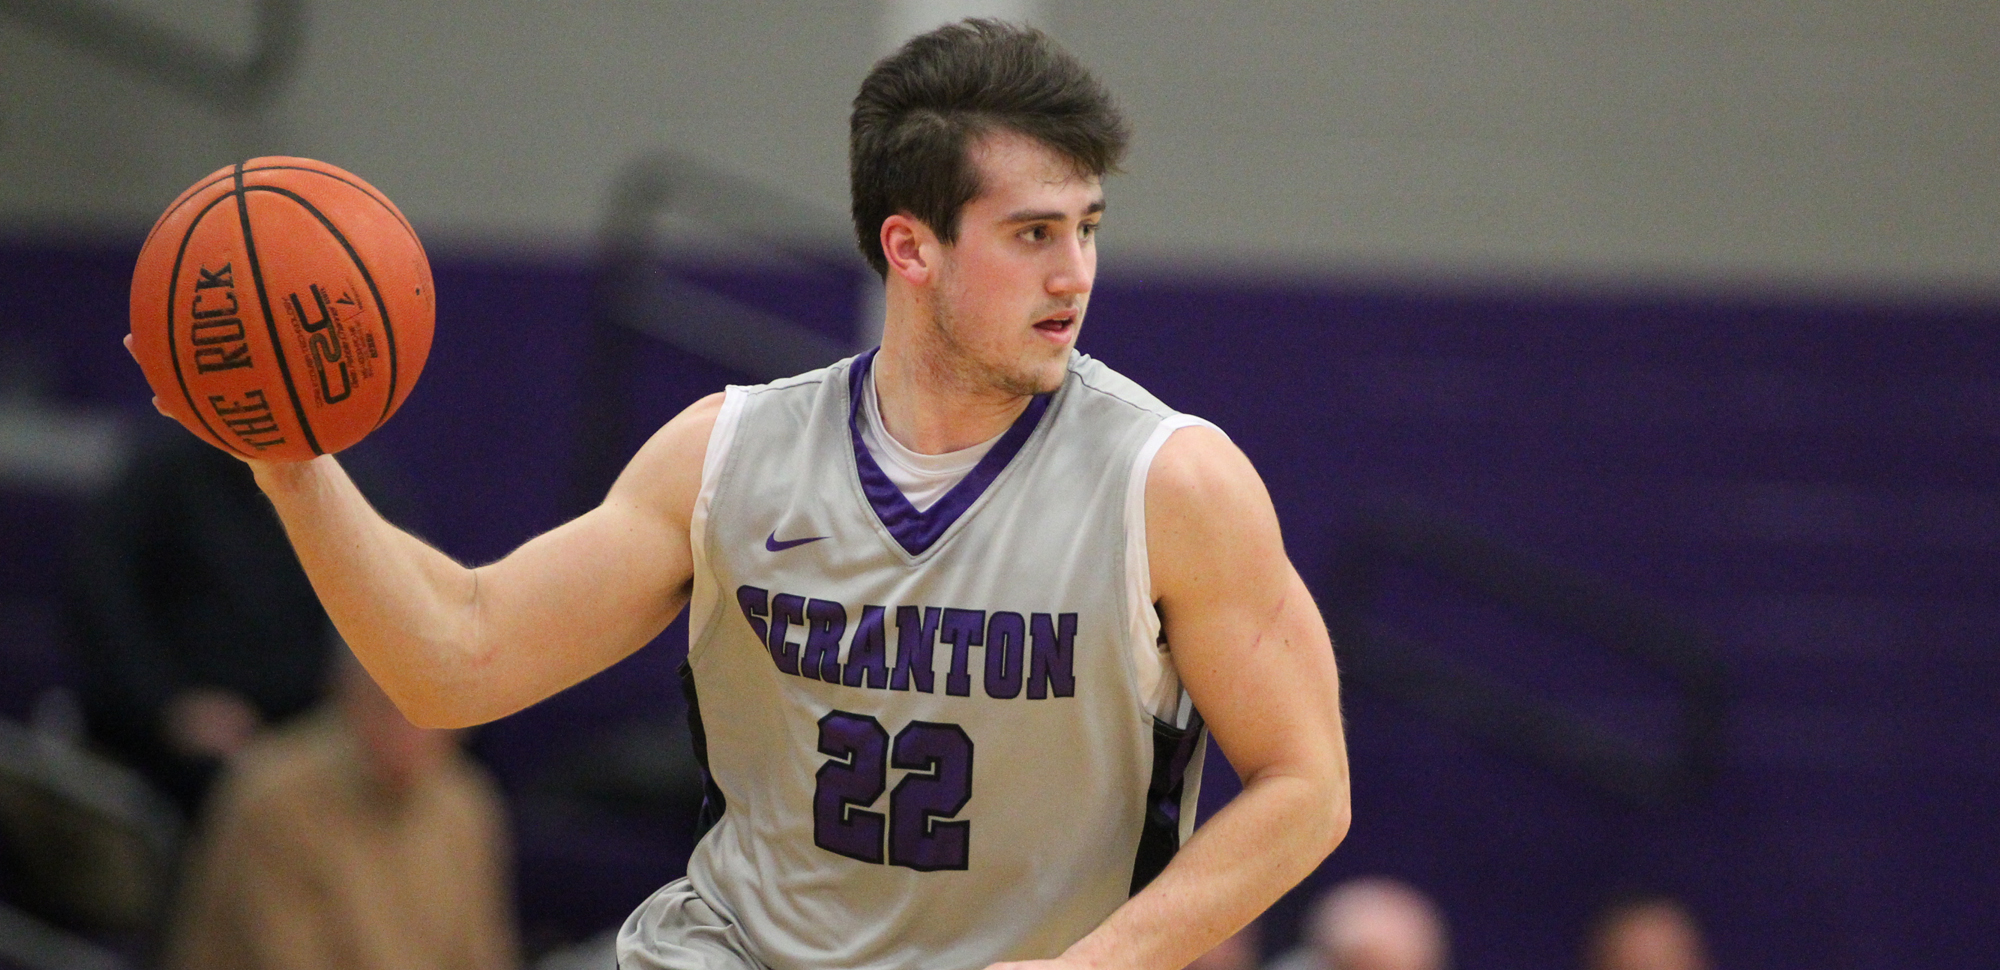 Junior Kyle DeVerna recorded 18 points, six rebounds, and three assists in Scranton's win over Drew on Wednesday night. © Photo by Timothy R. Dougherty / doubleeaglephotography.com